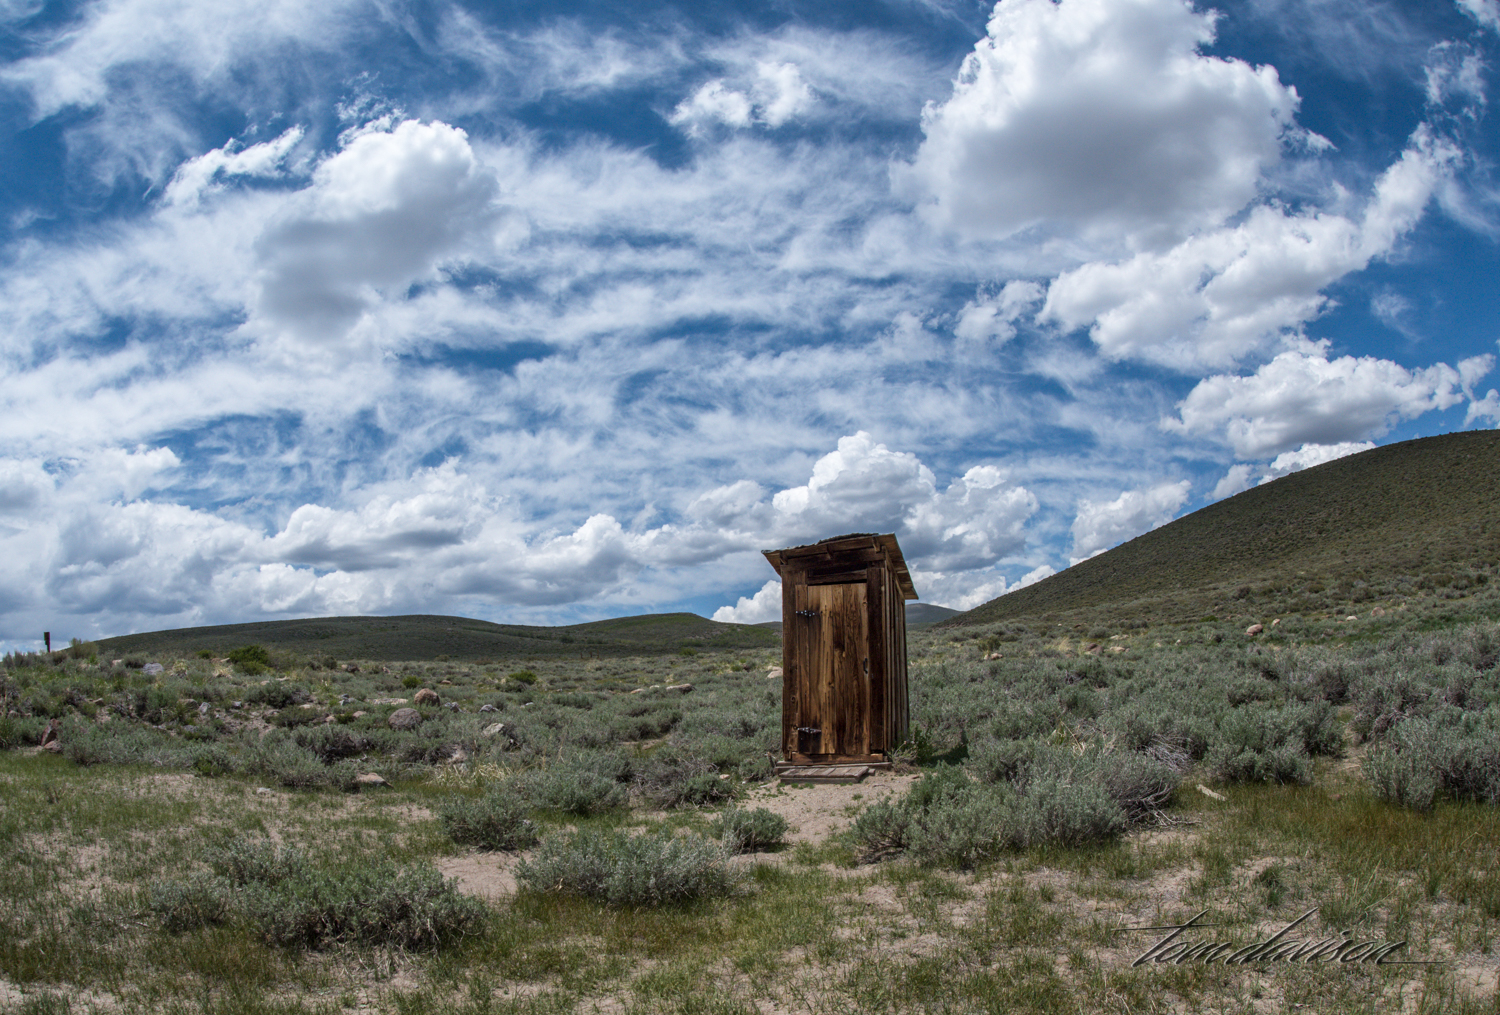 There were a number of outhouses dotting the fields. I am assured that one of them was operational.